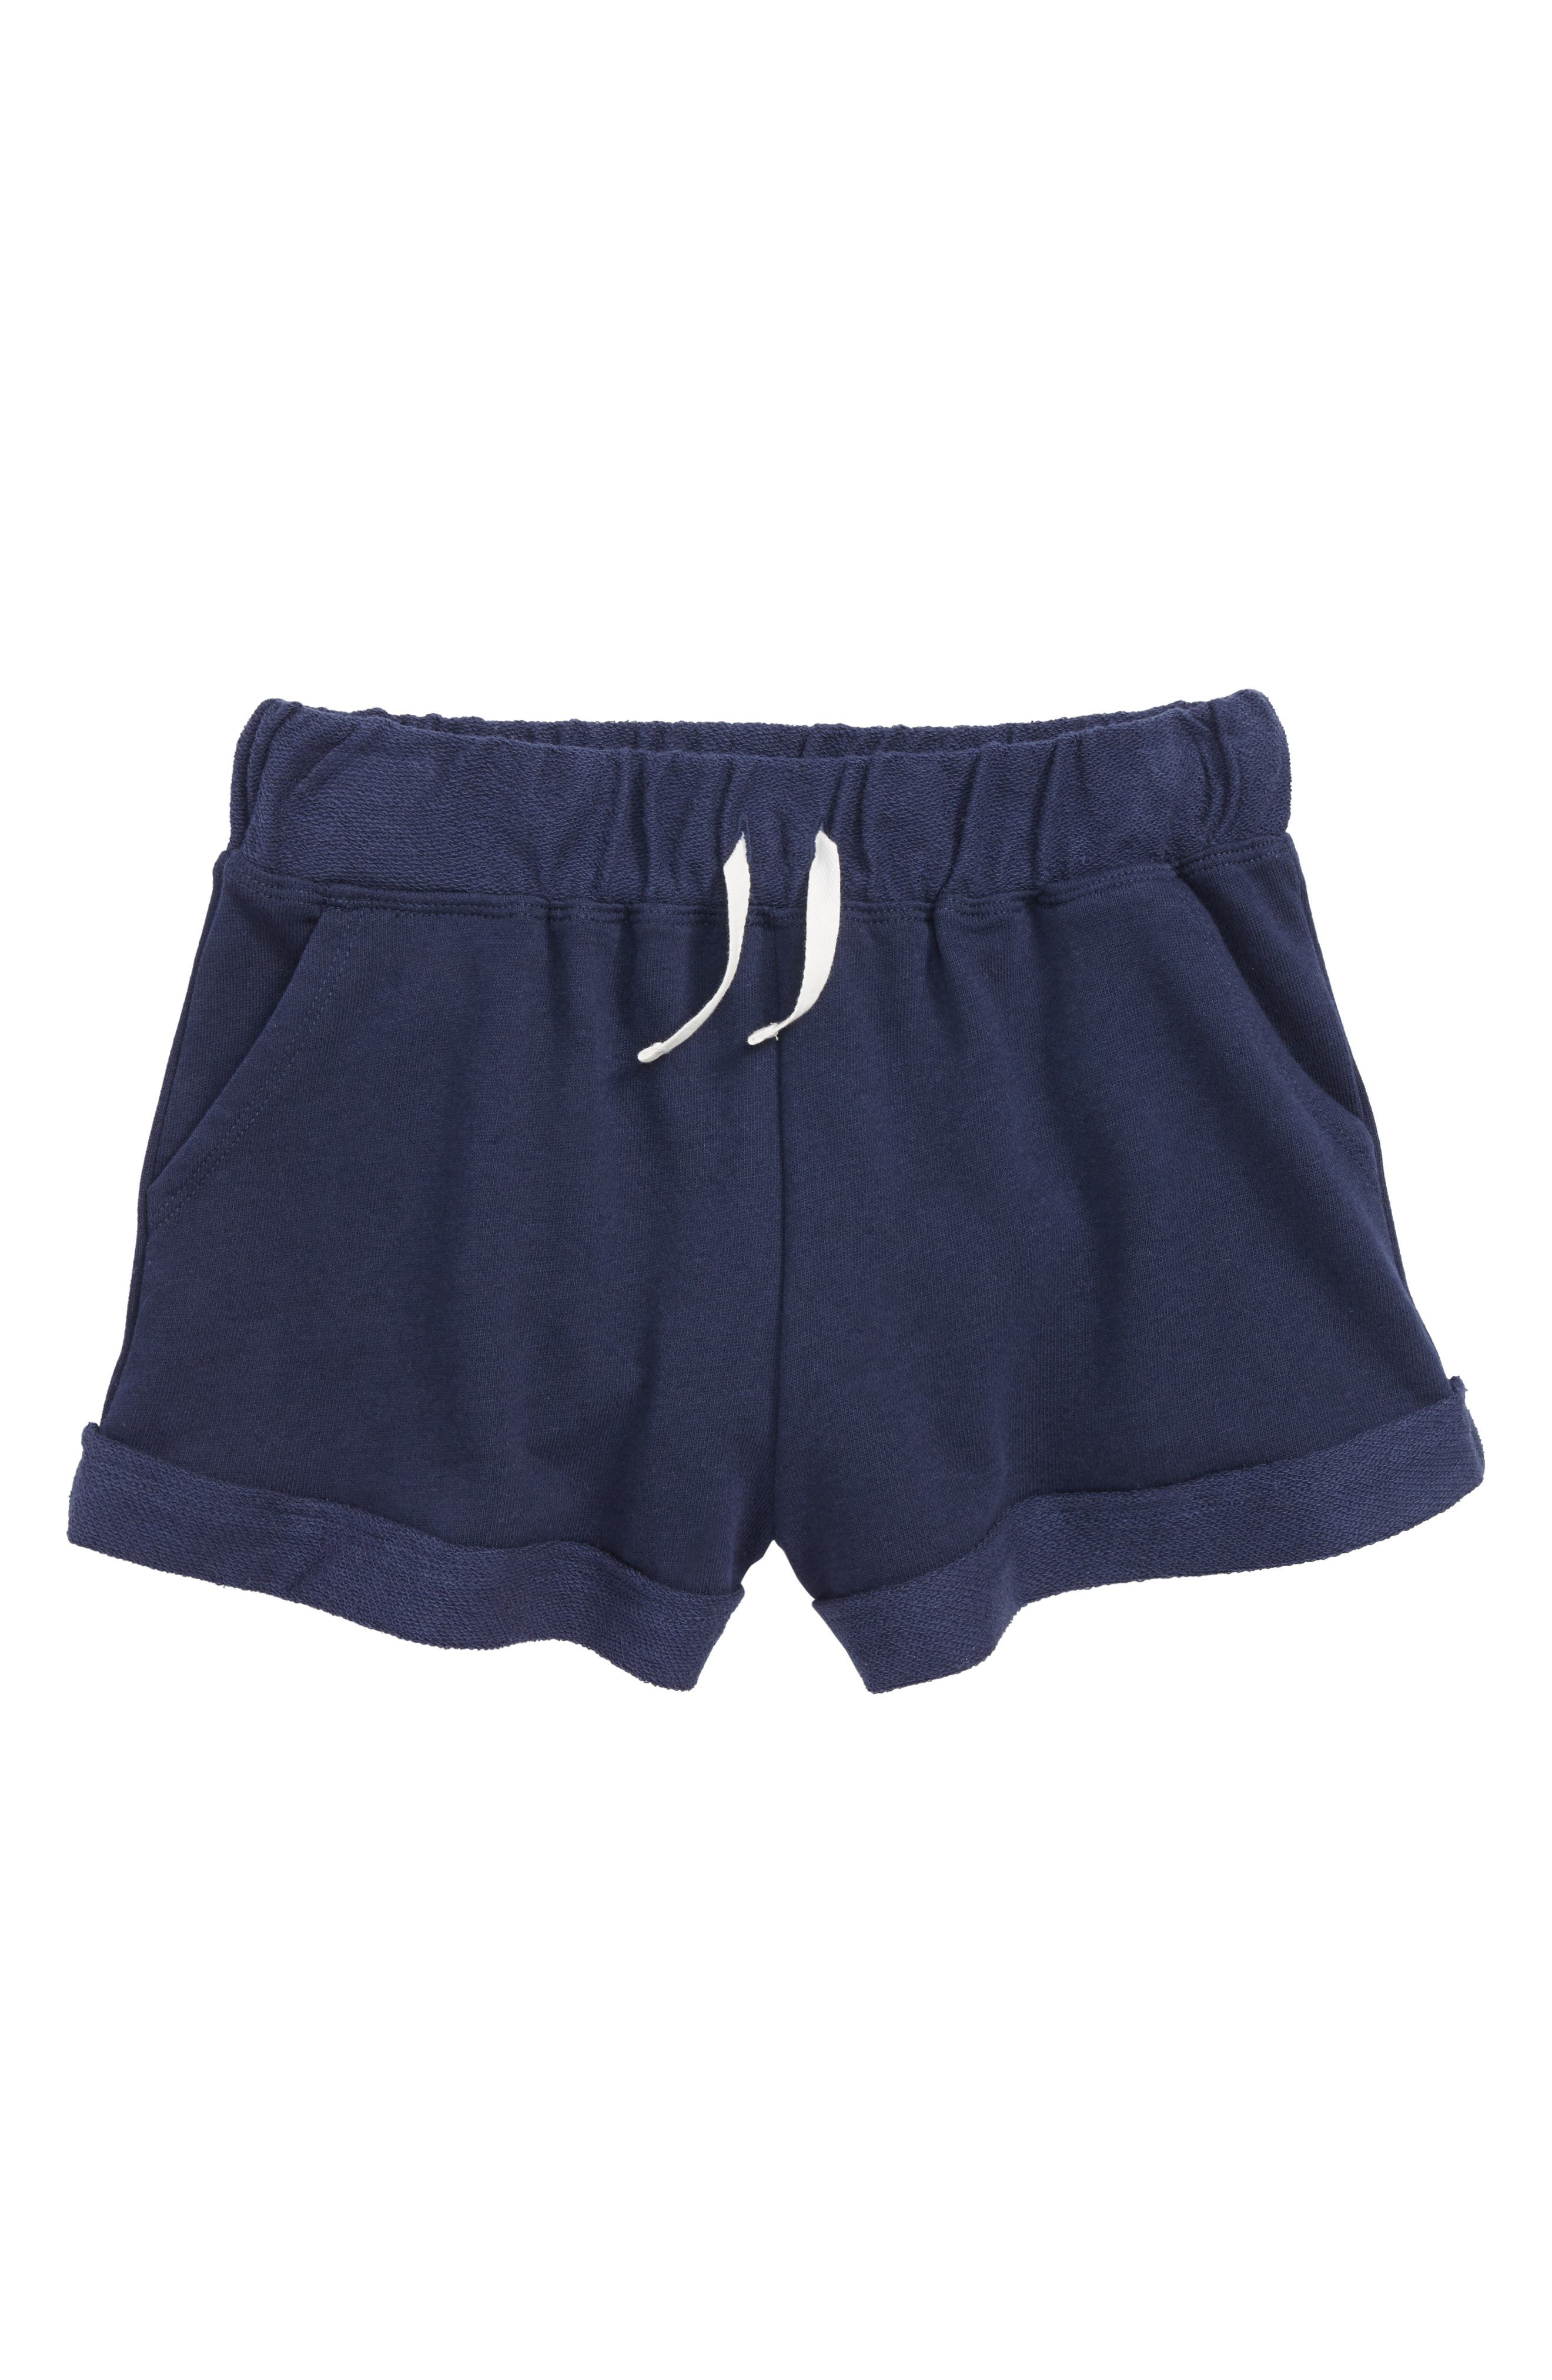 Cuff French Terry Shorts,                         Main,                         color, Navy